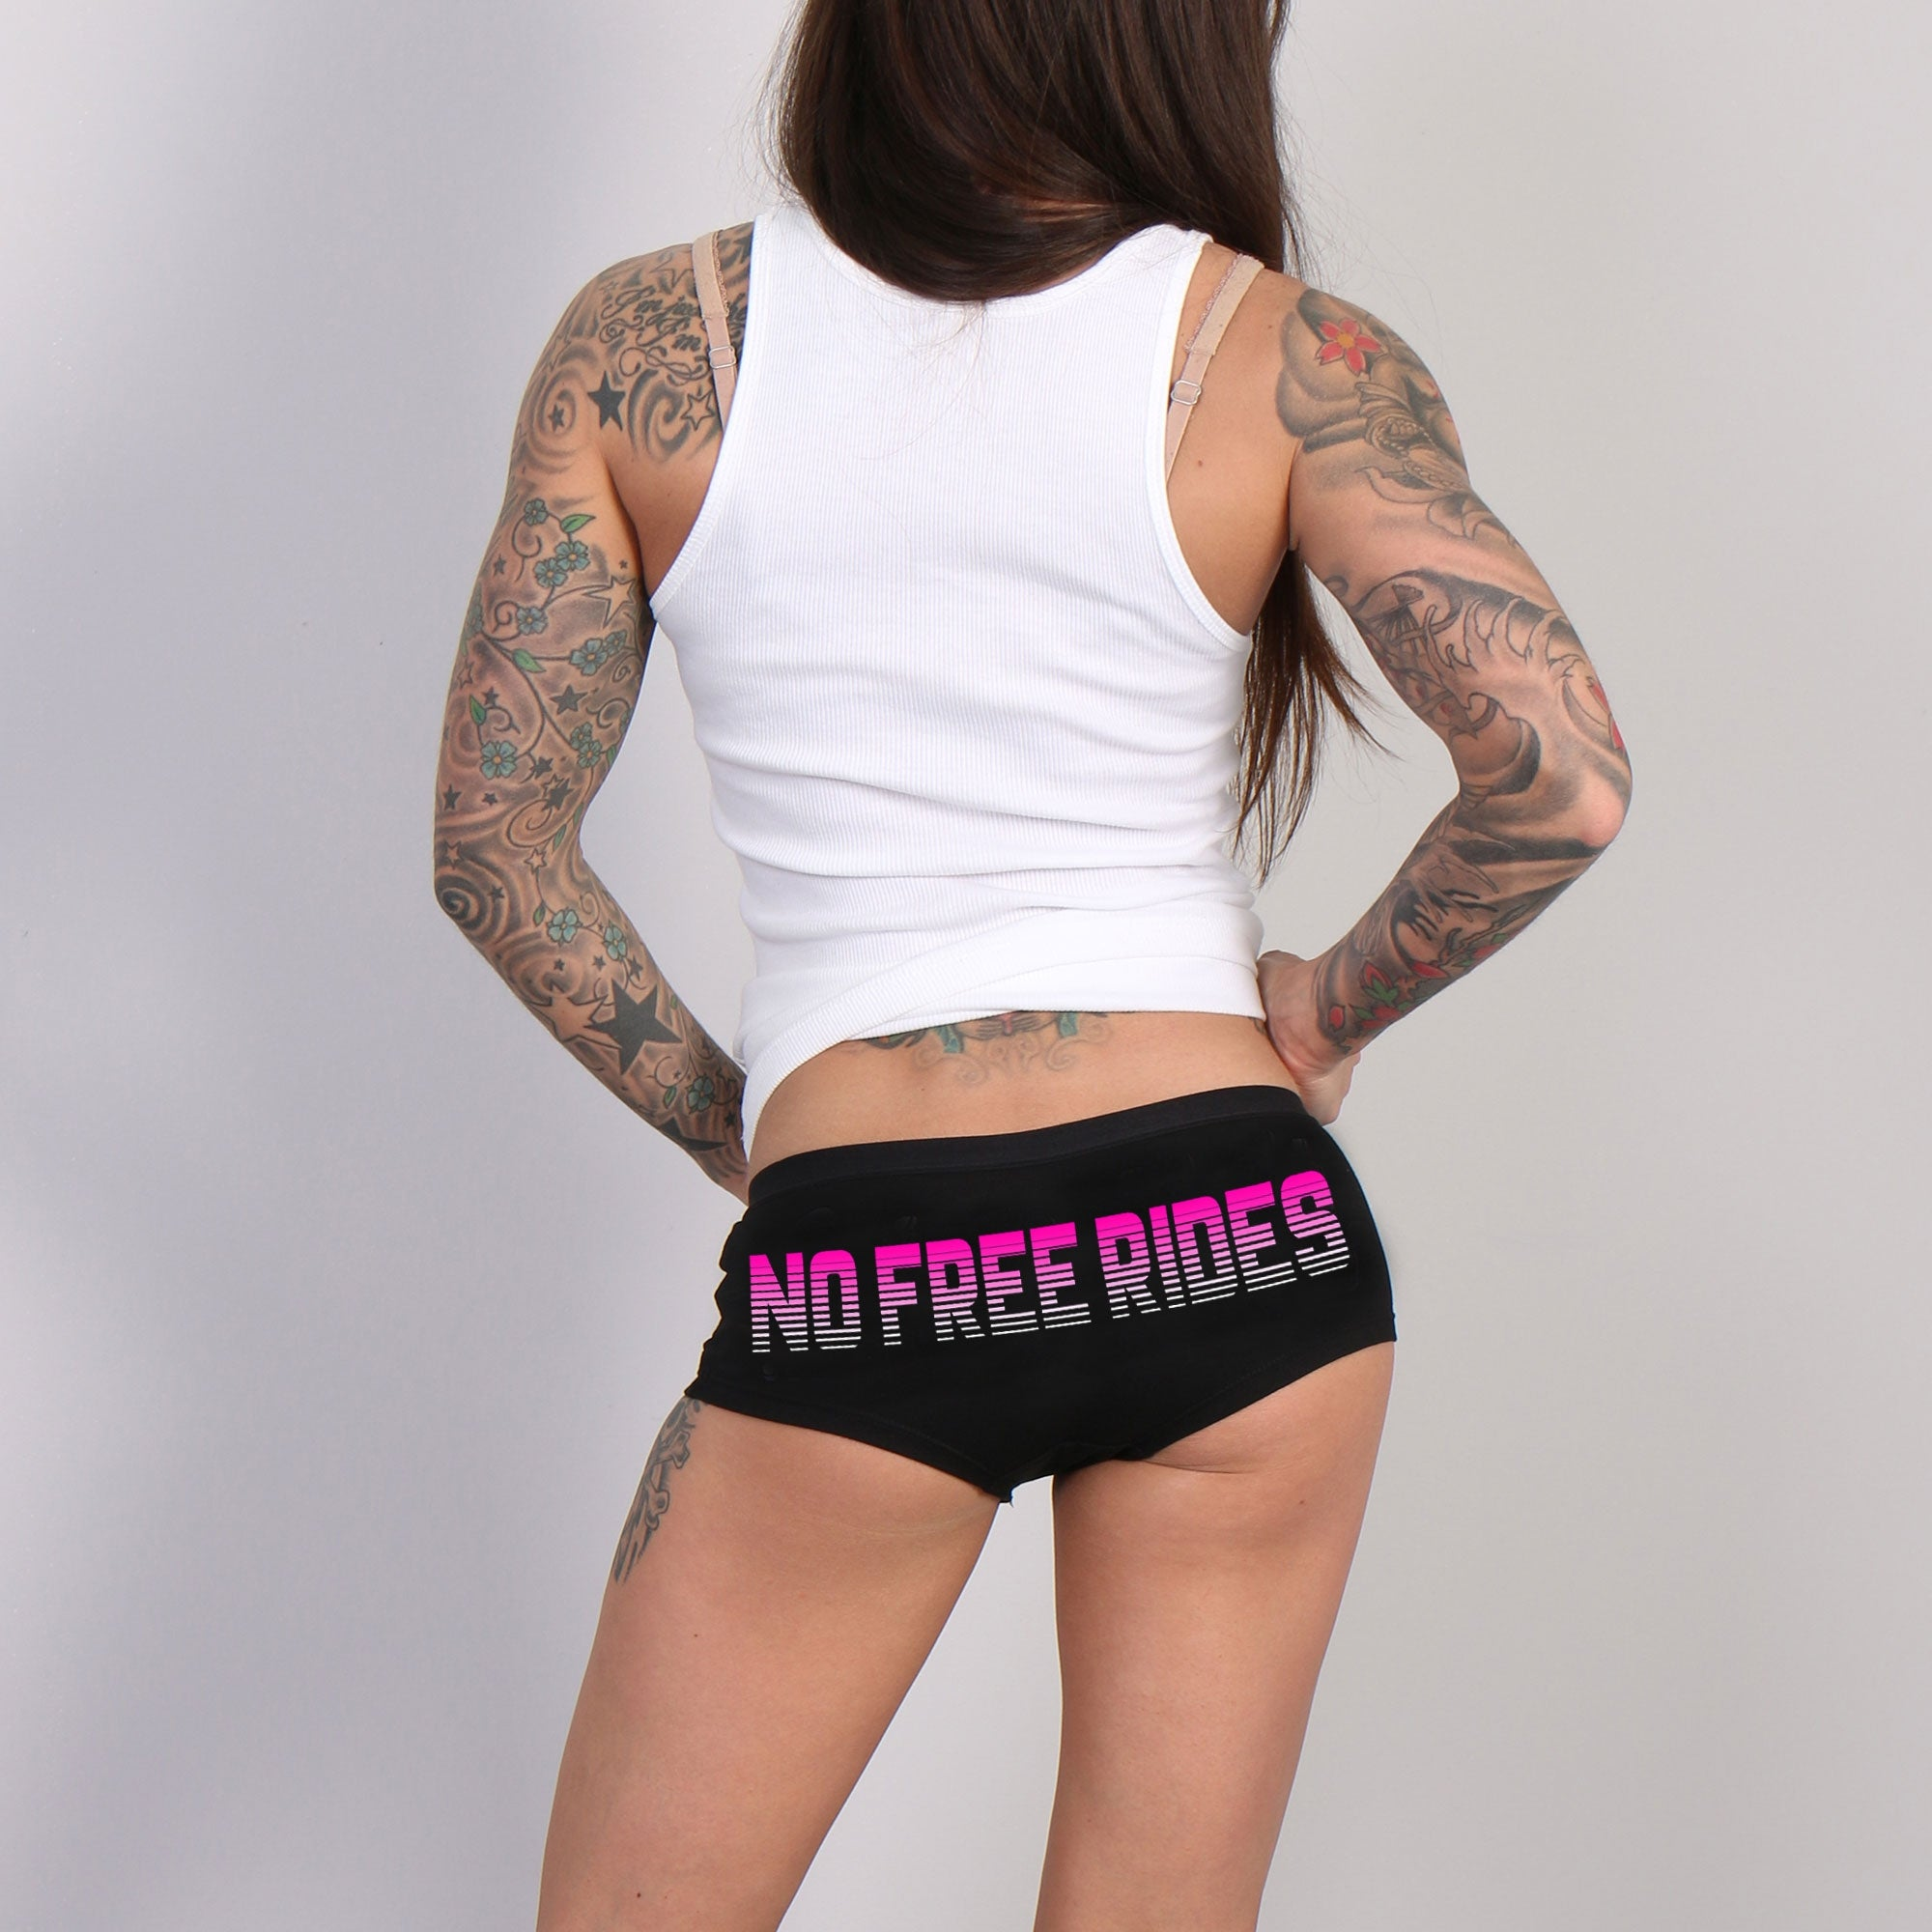 Hot Leathers No Free Rides Ladies Boy Shorts